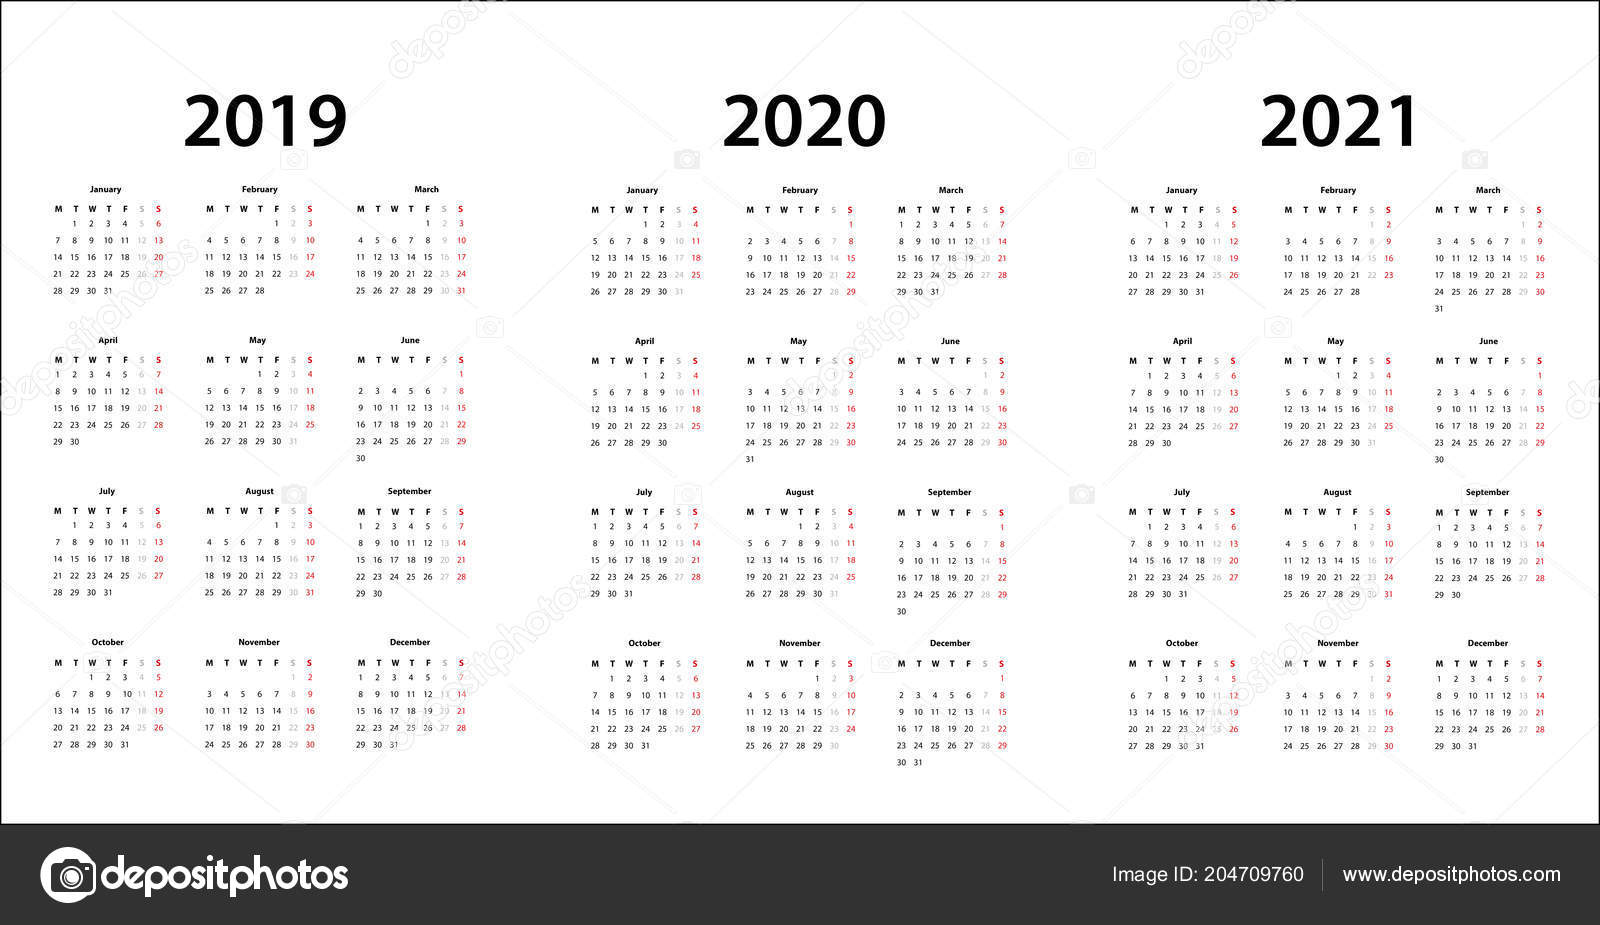 Calendario 2020 Vector Gratis.Simple Calendar Template 2019 2020 2021 Stock Vector